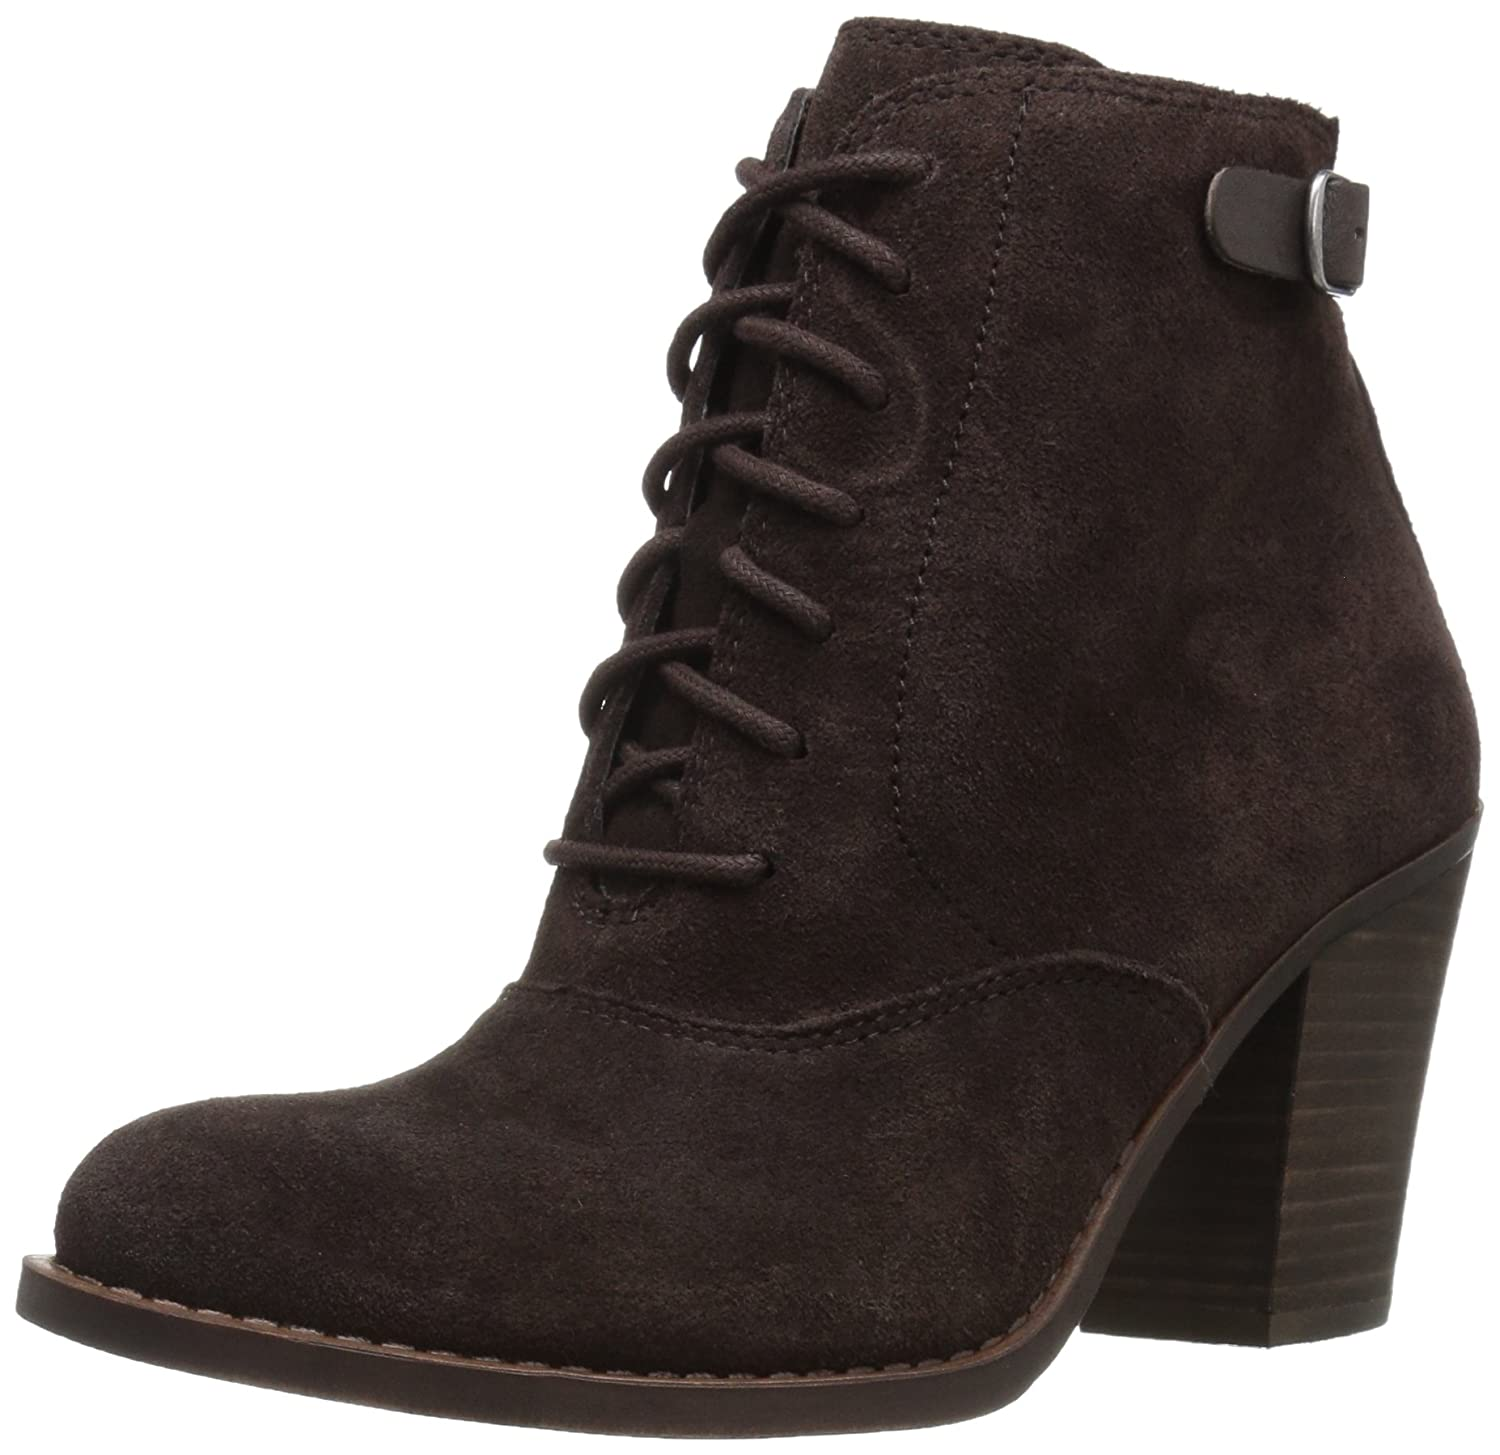 Lucky Brand Women's Echoh Ankle Bootie B01FXC27O6 7 B(M) US|Java